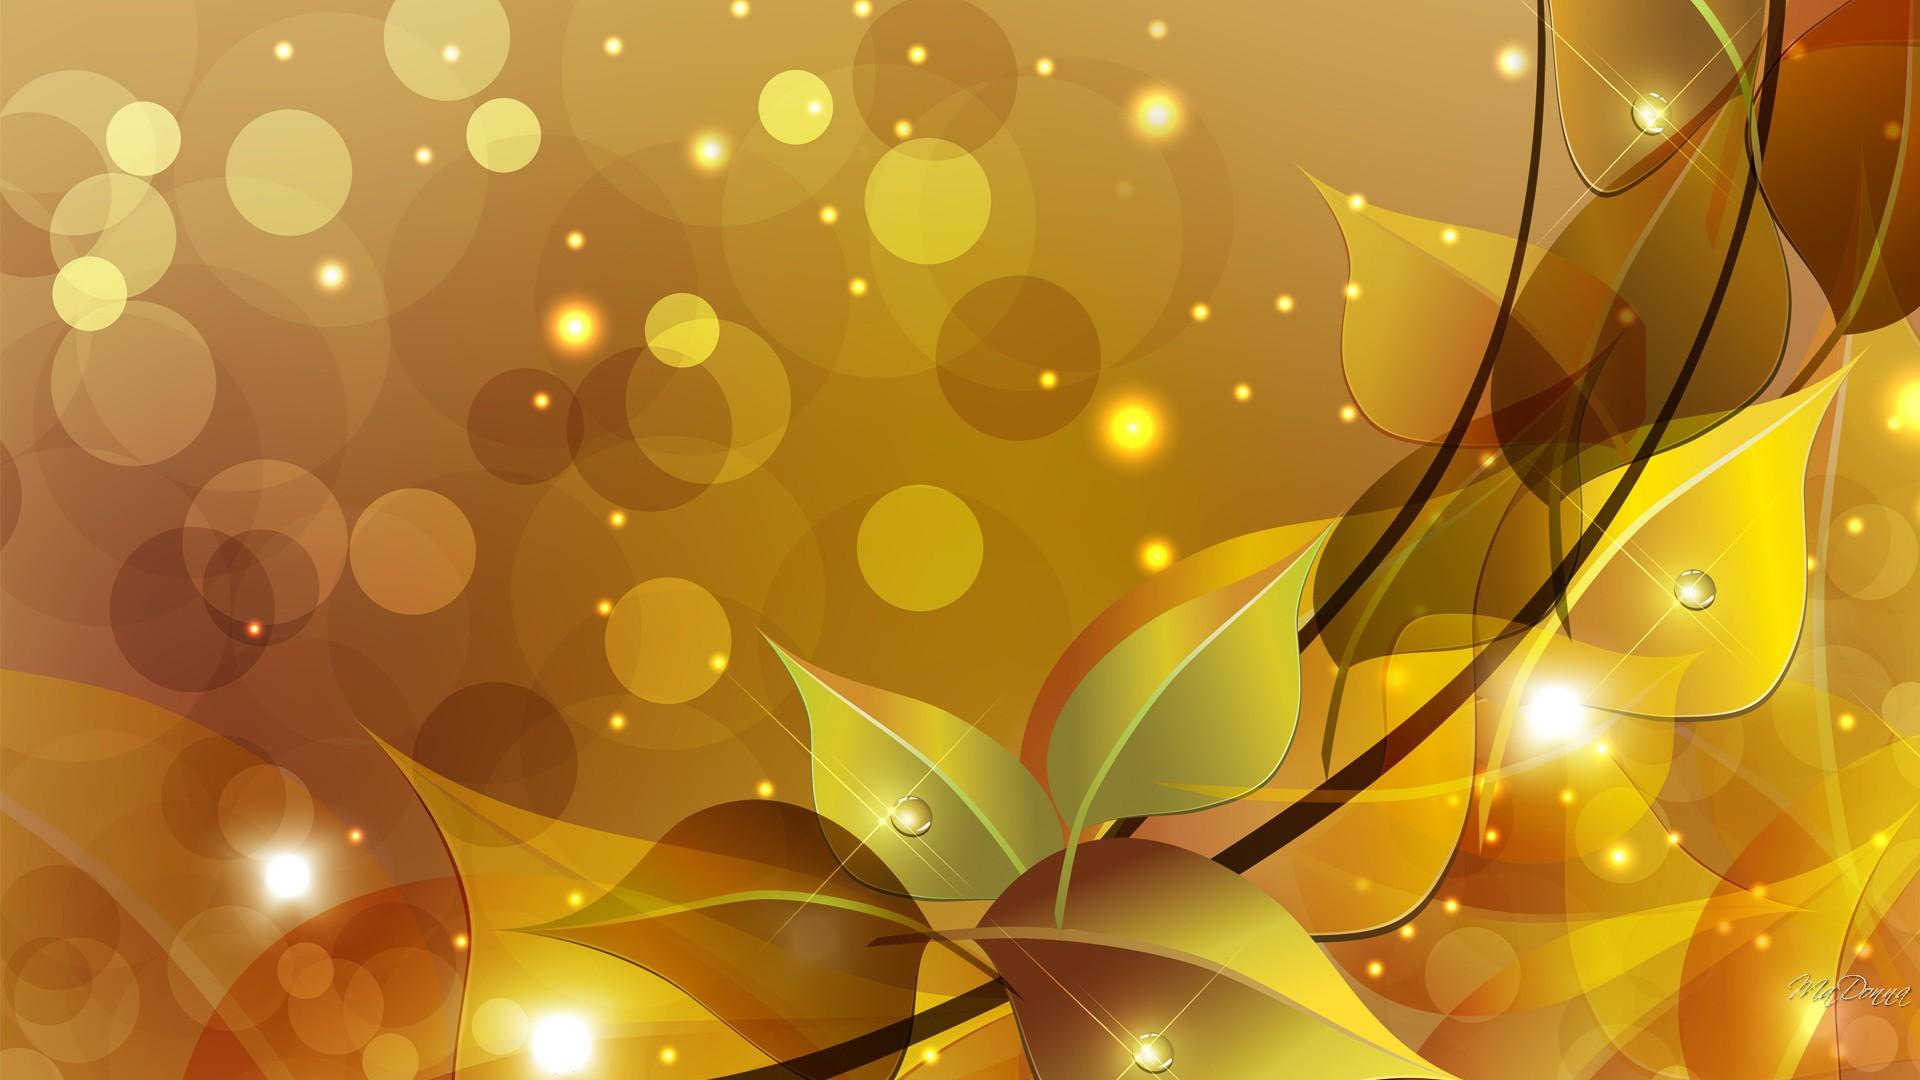 Gold Wallpapers HD Download Gold Wallpapers HD Gold Wallpapers HD